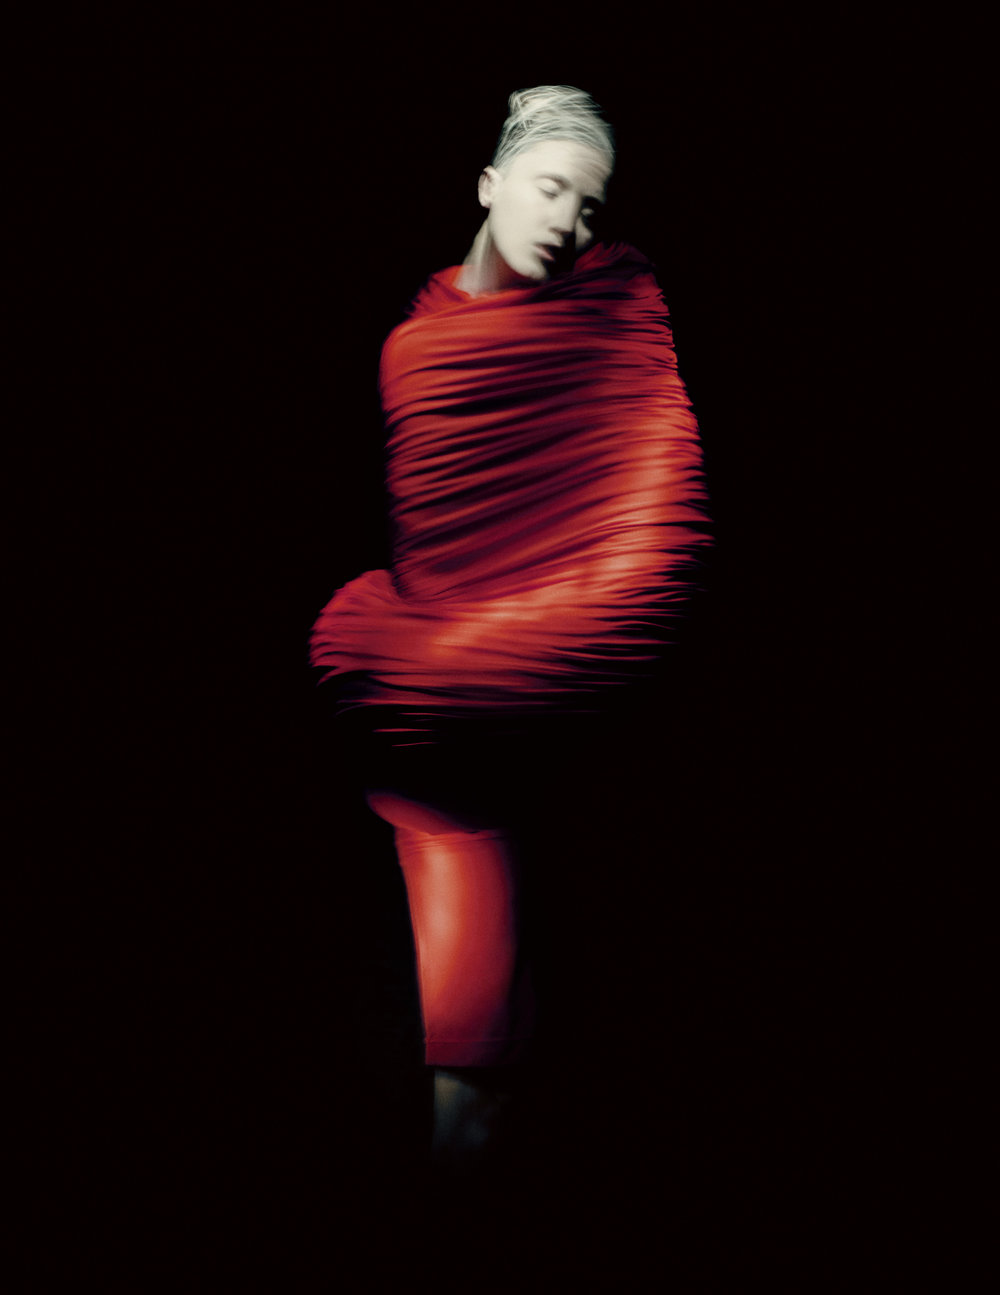 Rei Kawakubo (Japanese, born 1942) for  Comme des Garçons (Japanese, founded  1969), Body Meets Dress–Dress Meets  Body, spring/summer 1997; Courtesy of Comme  des Garçons.  Photograph by © Paolo Roversi; Courtesy of The  Metropolitan Museum of Art